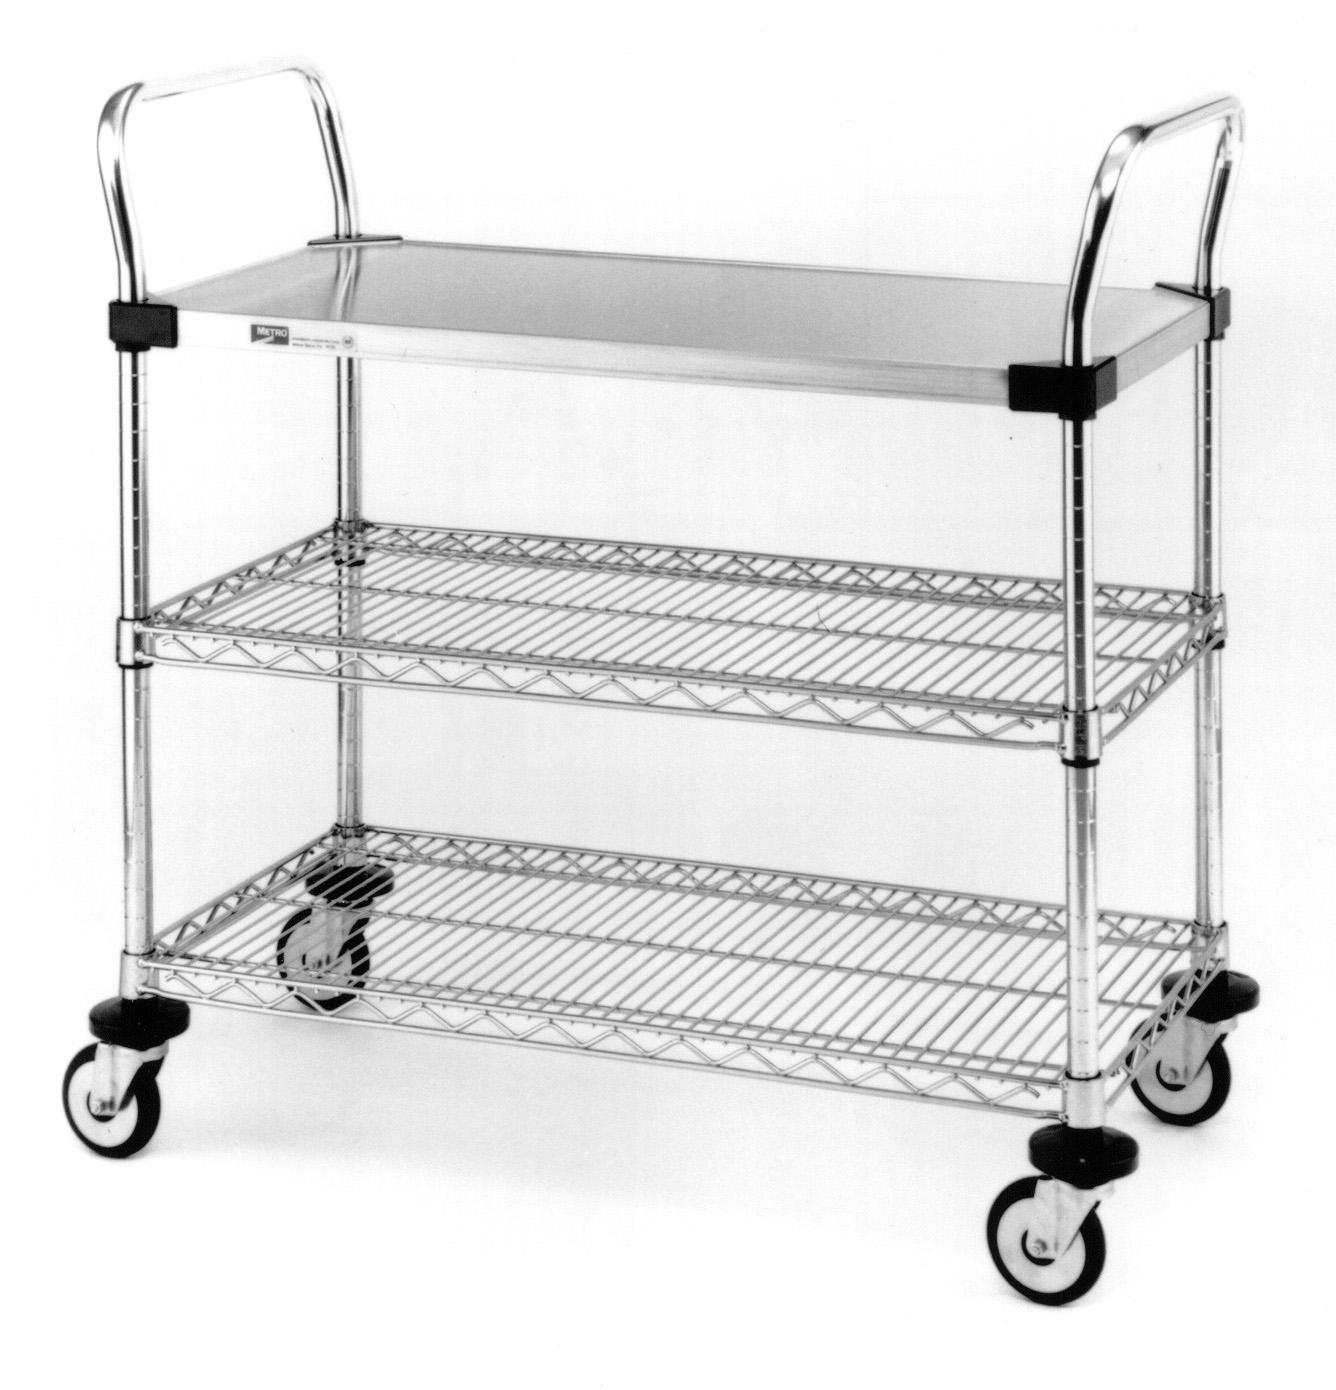 Metro MW400 Series, Utility Carts, Stainless steel shelving, Chrome